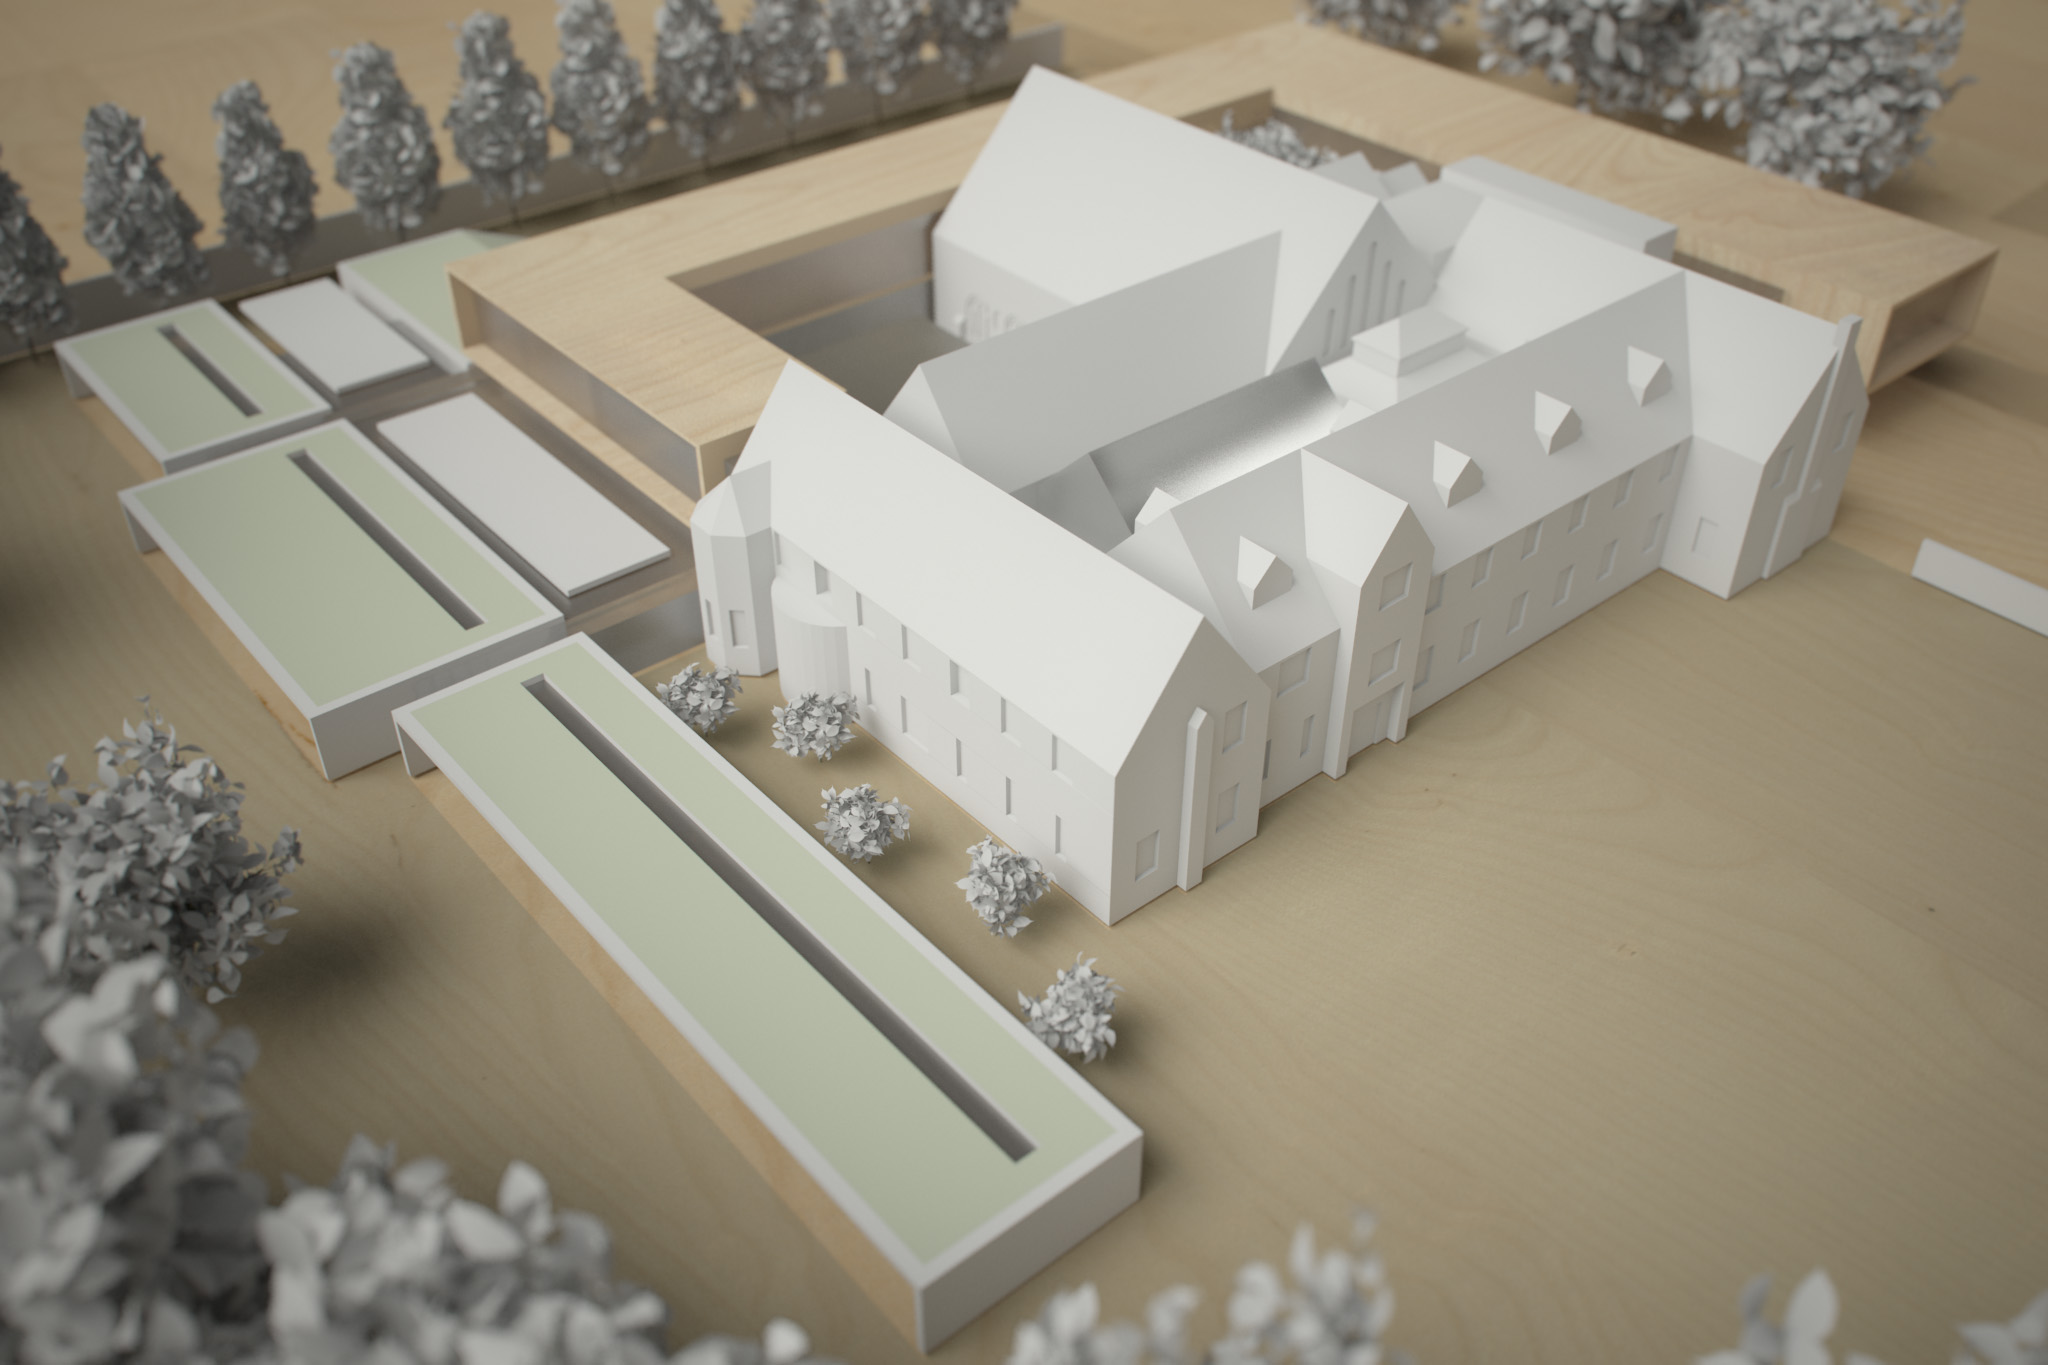 Monastery Building Conversion and Extension Liverpool Physical Model 4